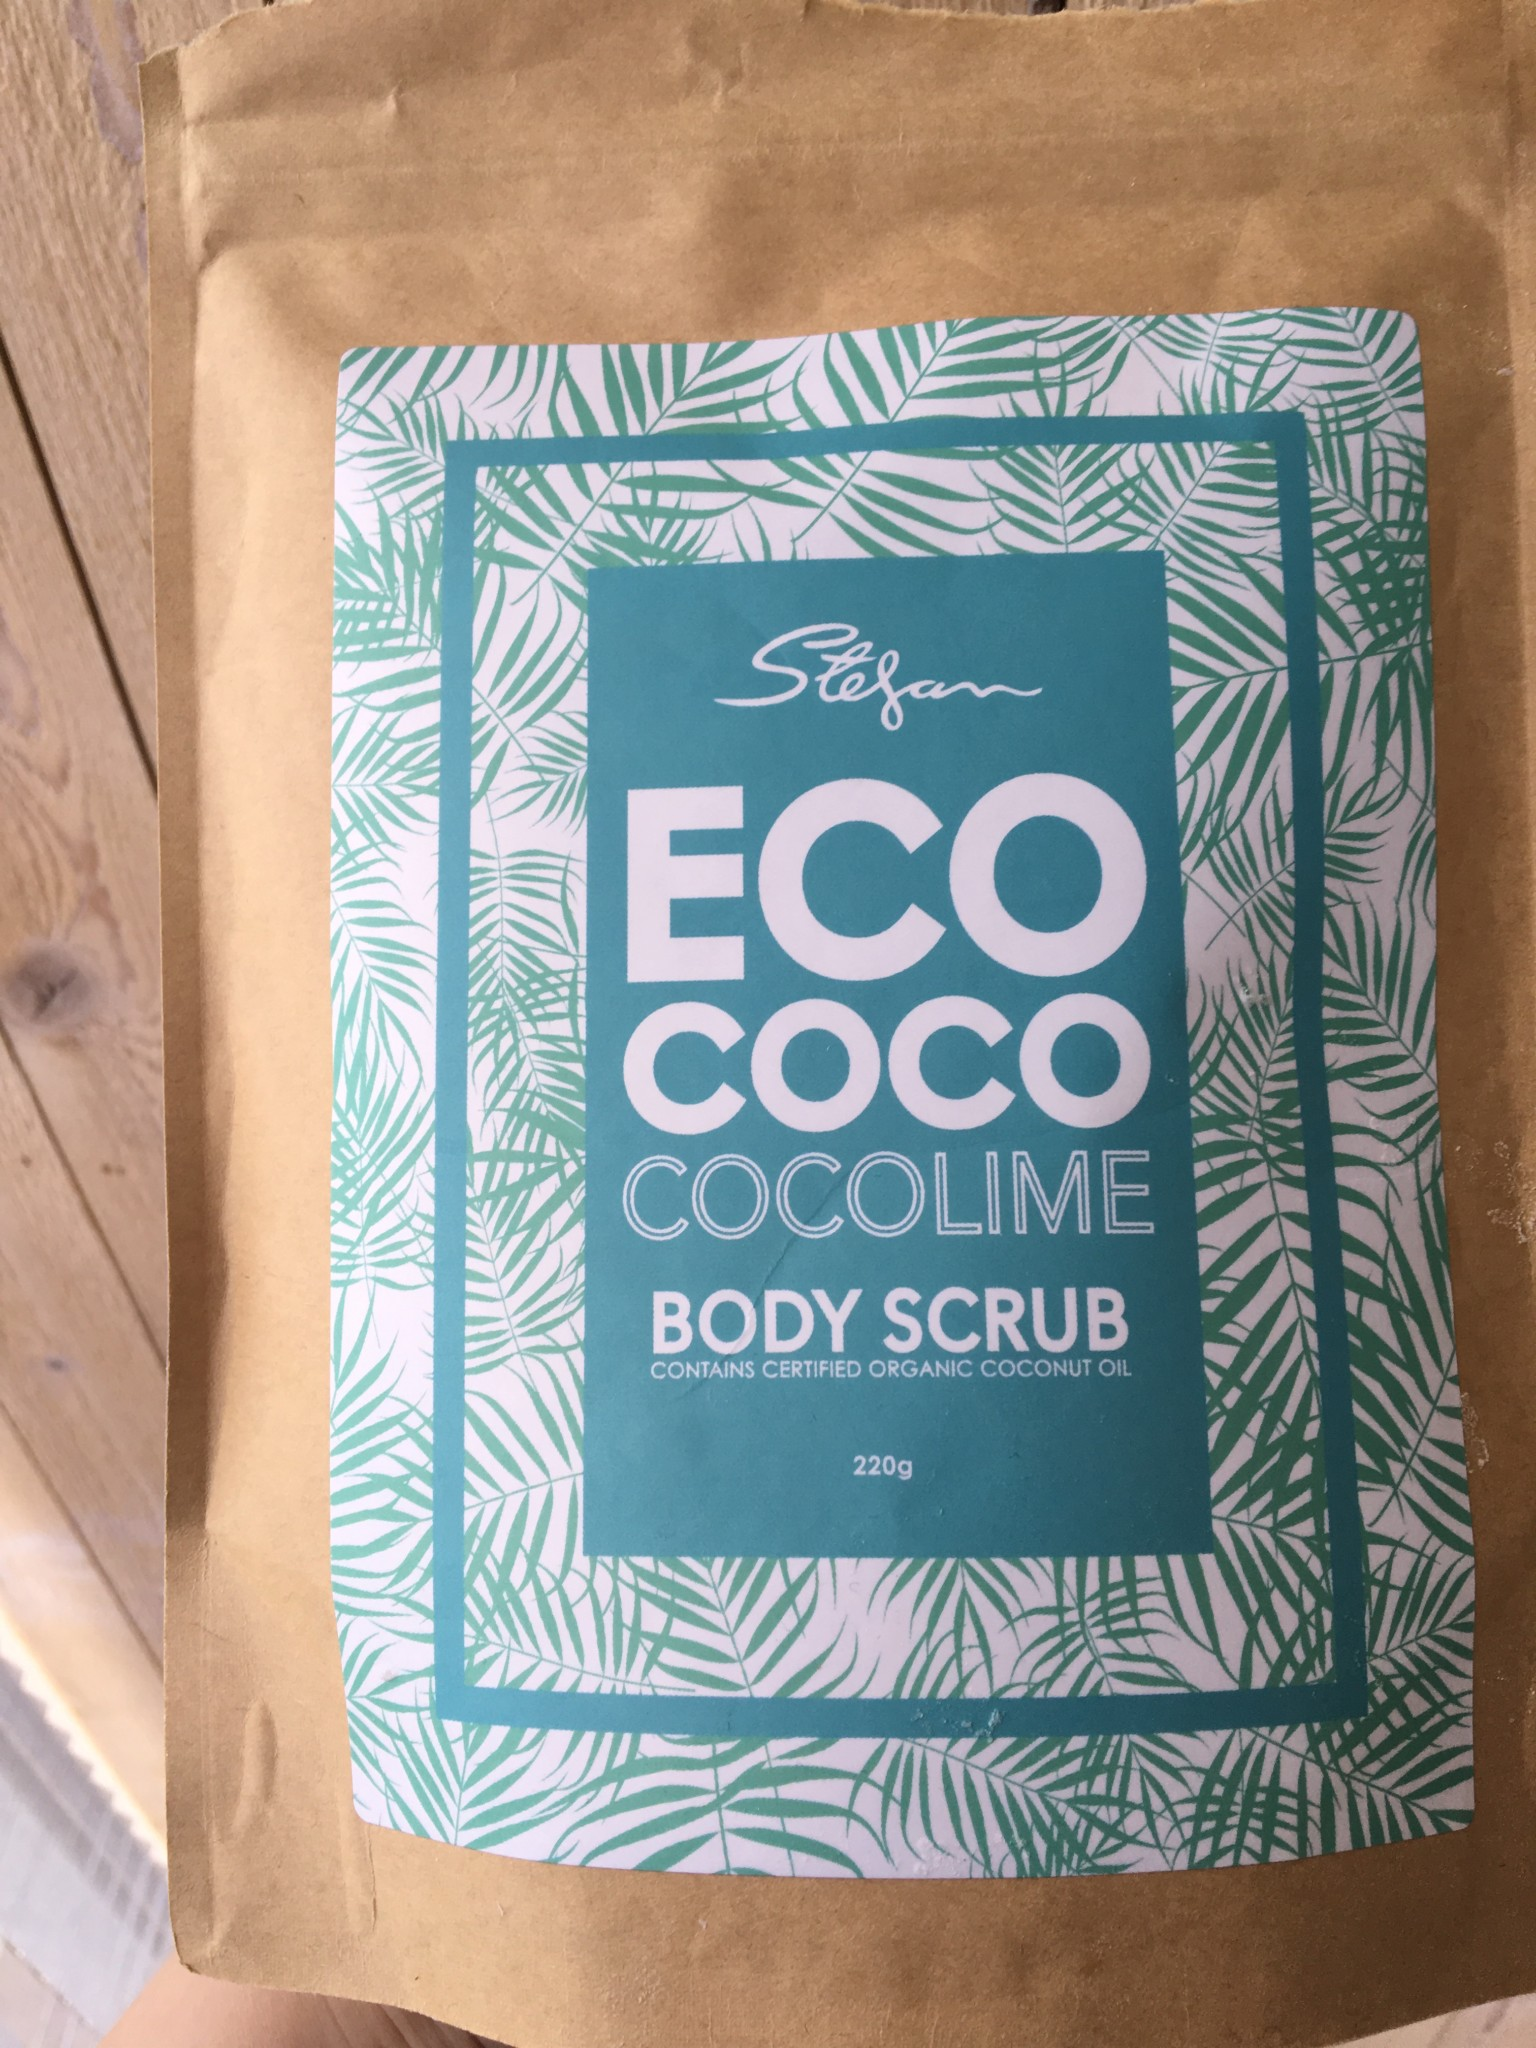 EcoCoco body scrub coconut lime